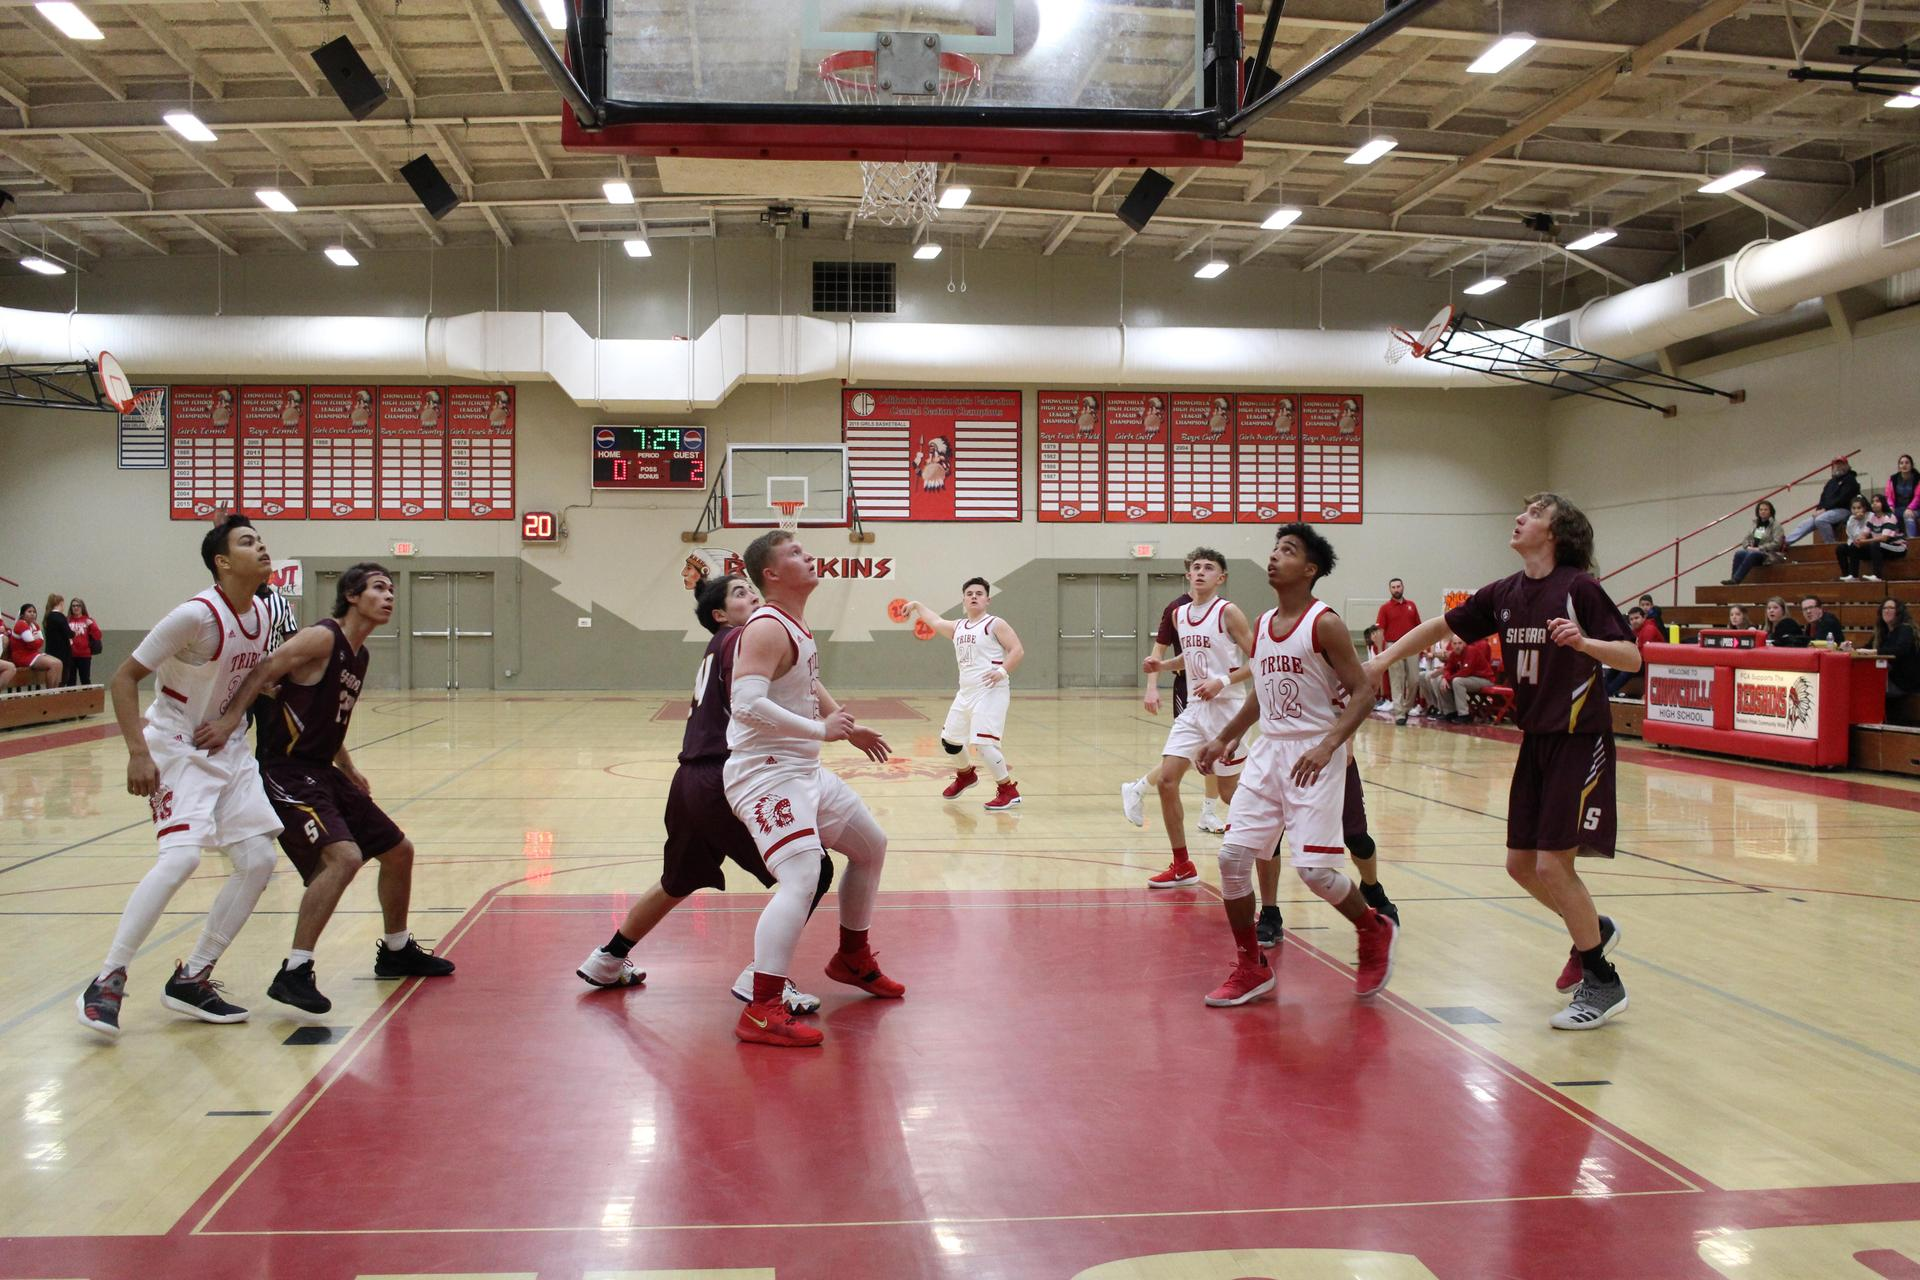 Varsity boys playing basketball against Sierra